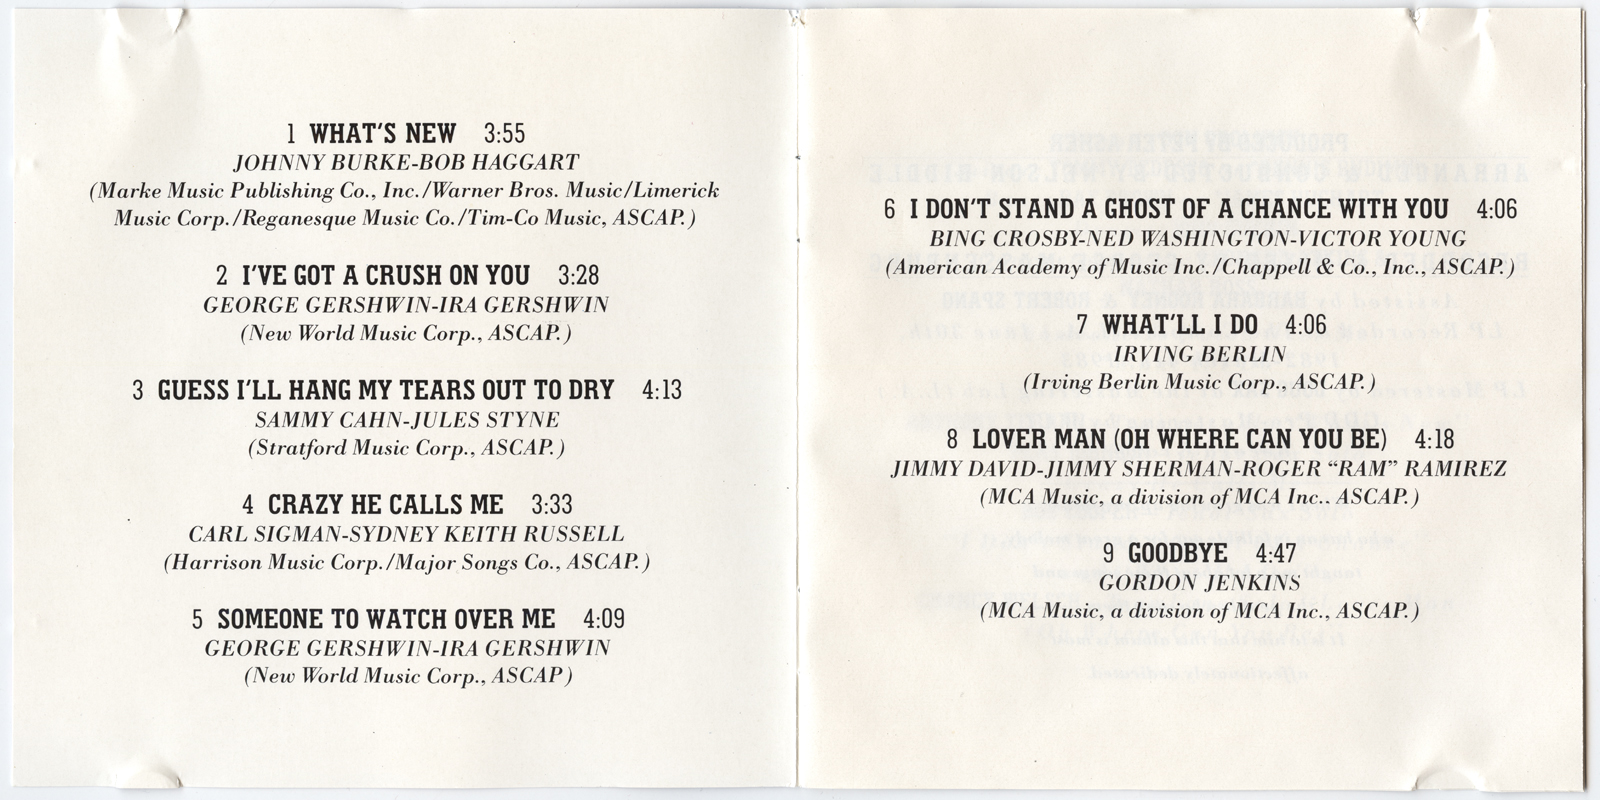 Target Cd Ronstadt Linda Whats New V005 Johnny 5 Bing Images Insert Panels 4 And